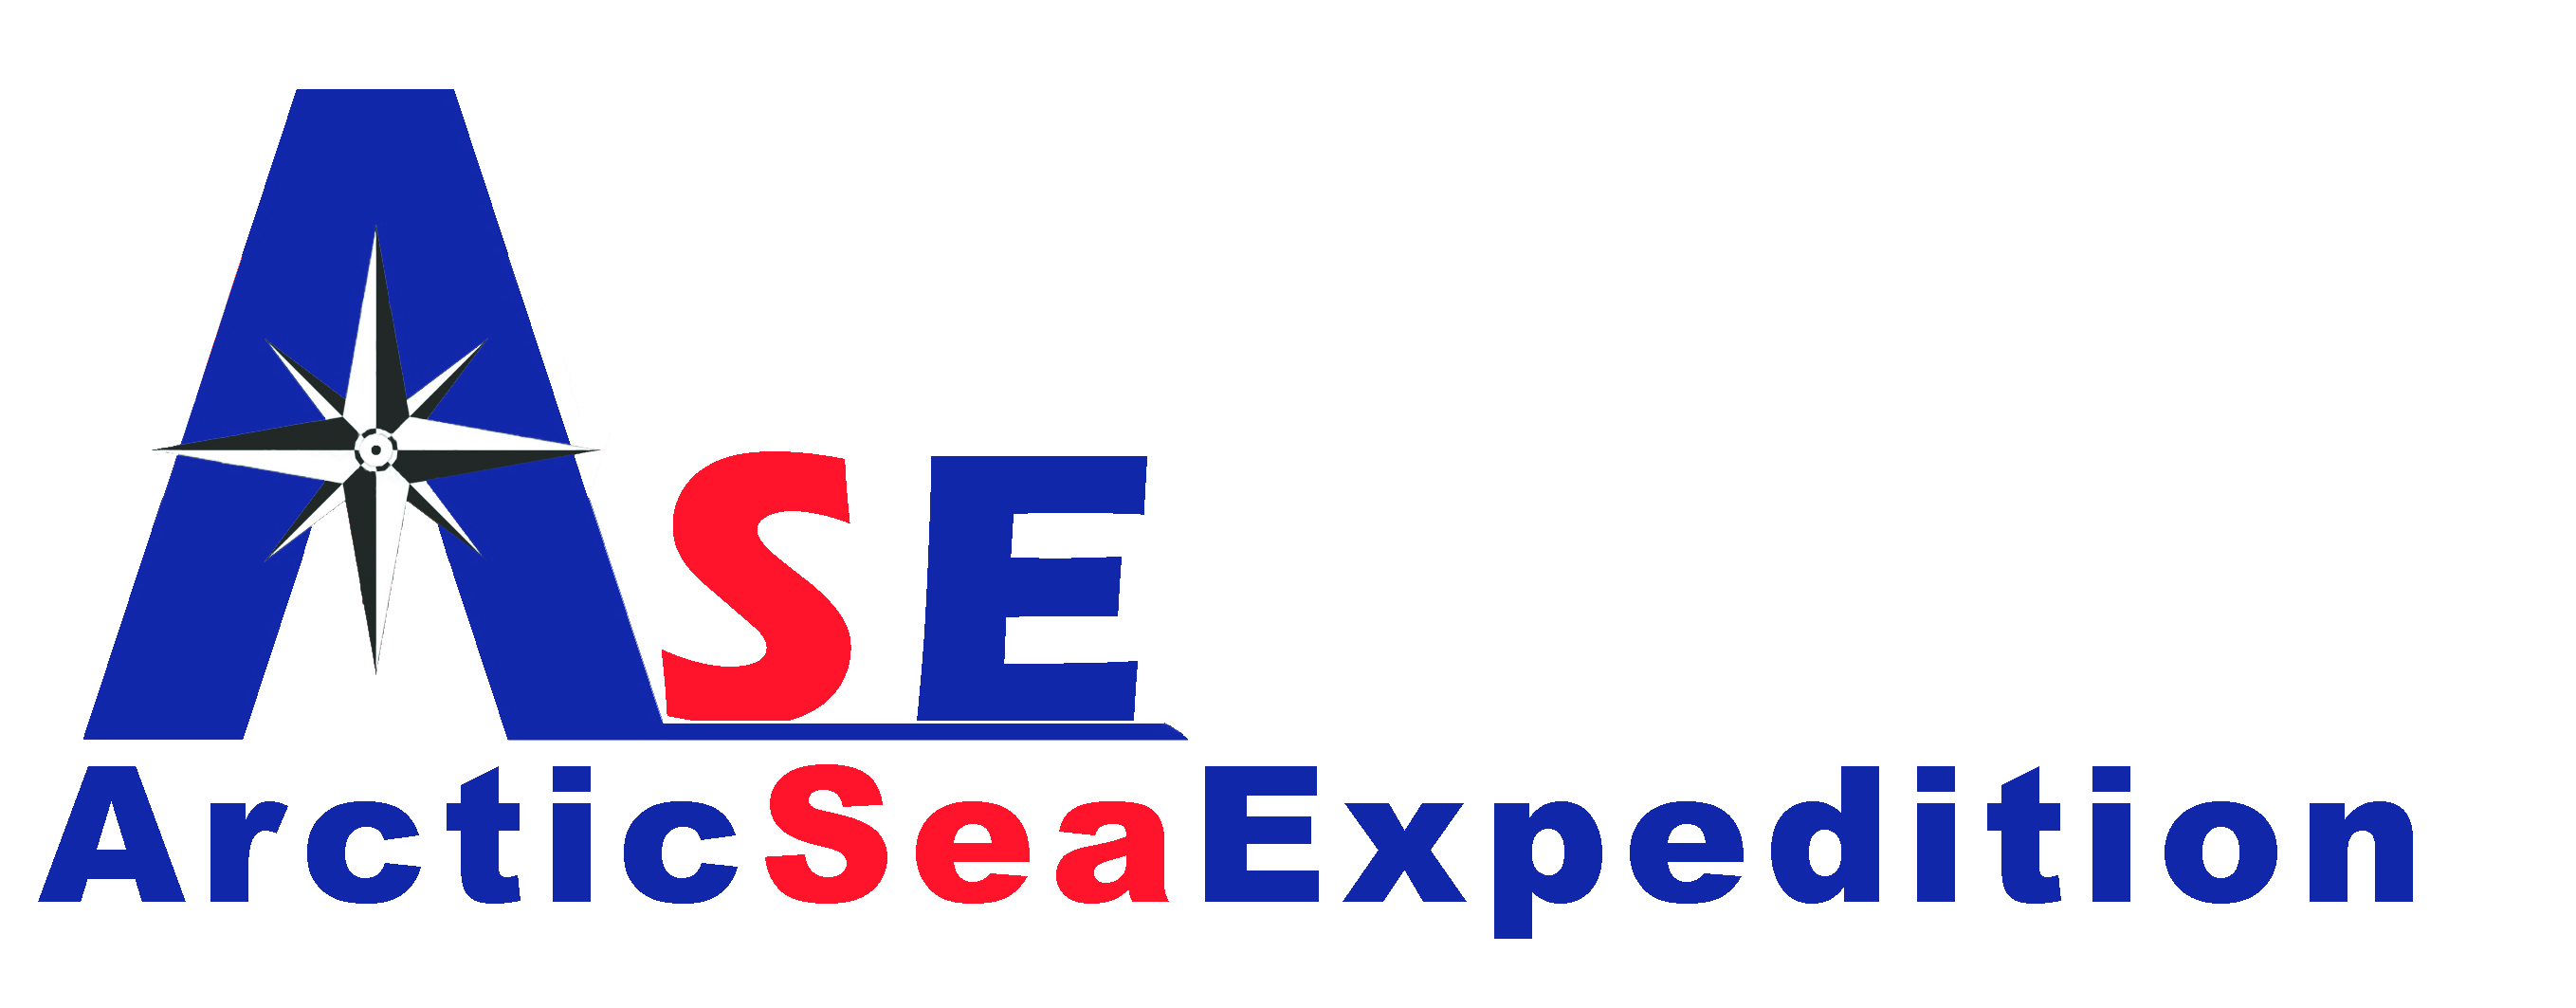 ArcticSeaExpedition